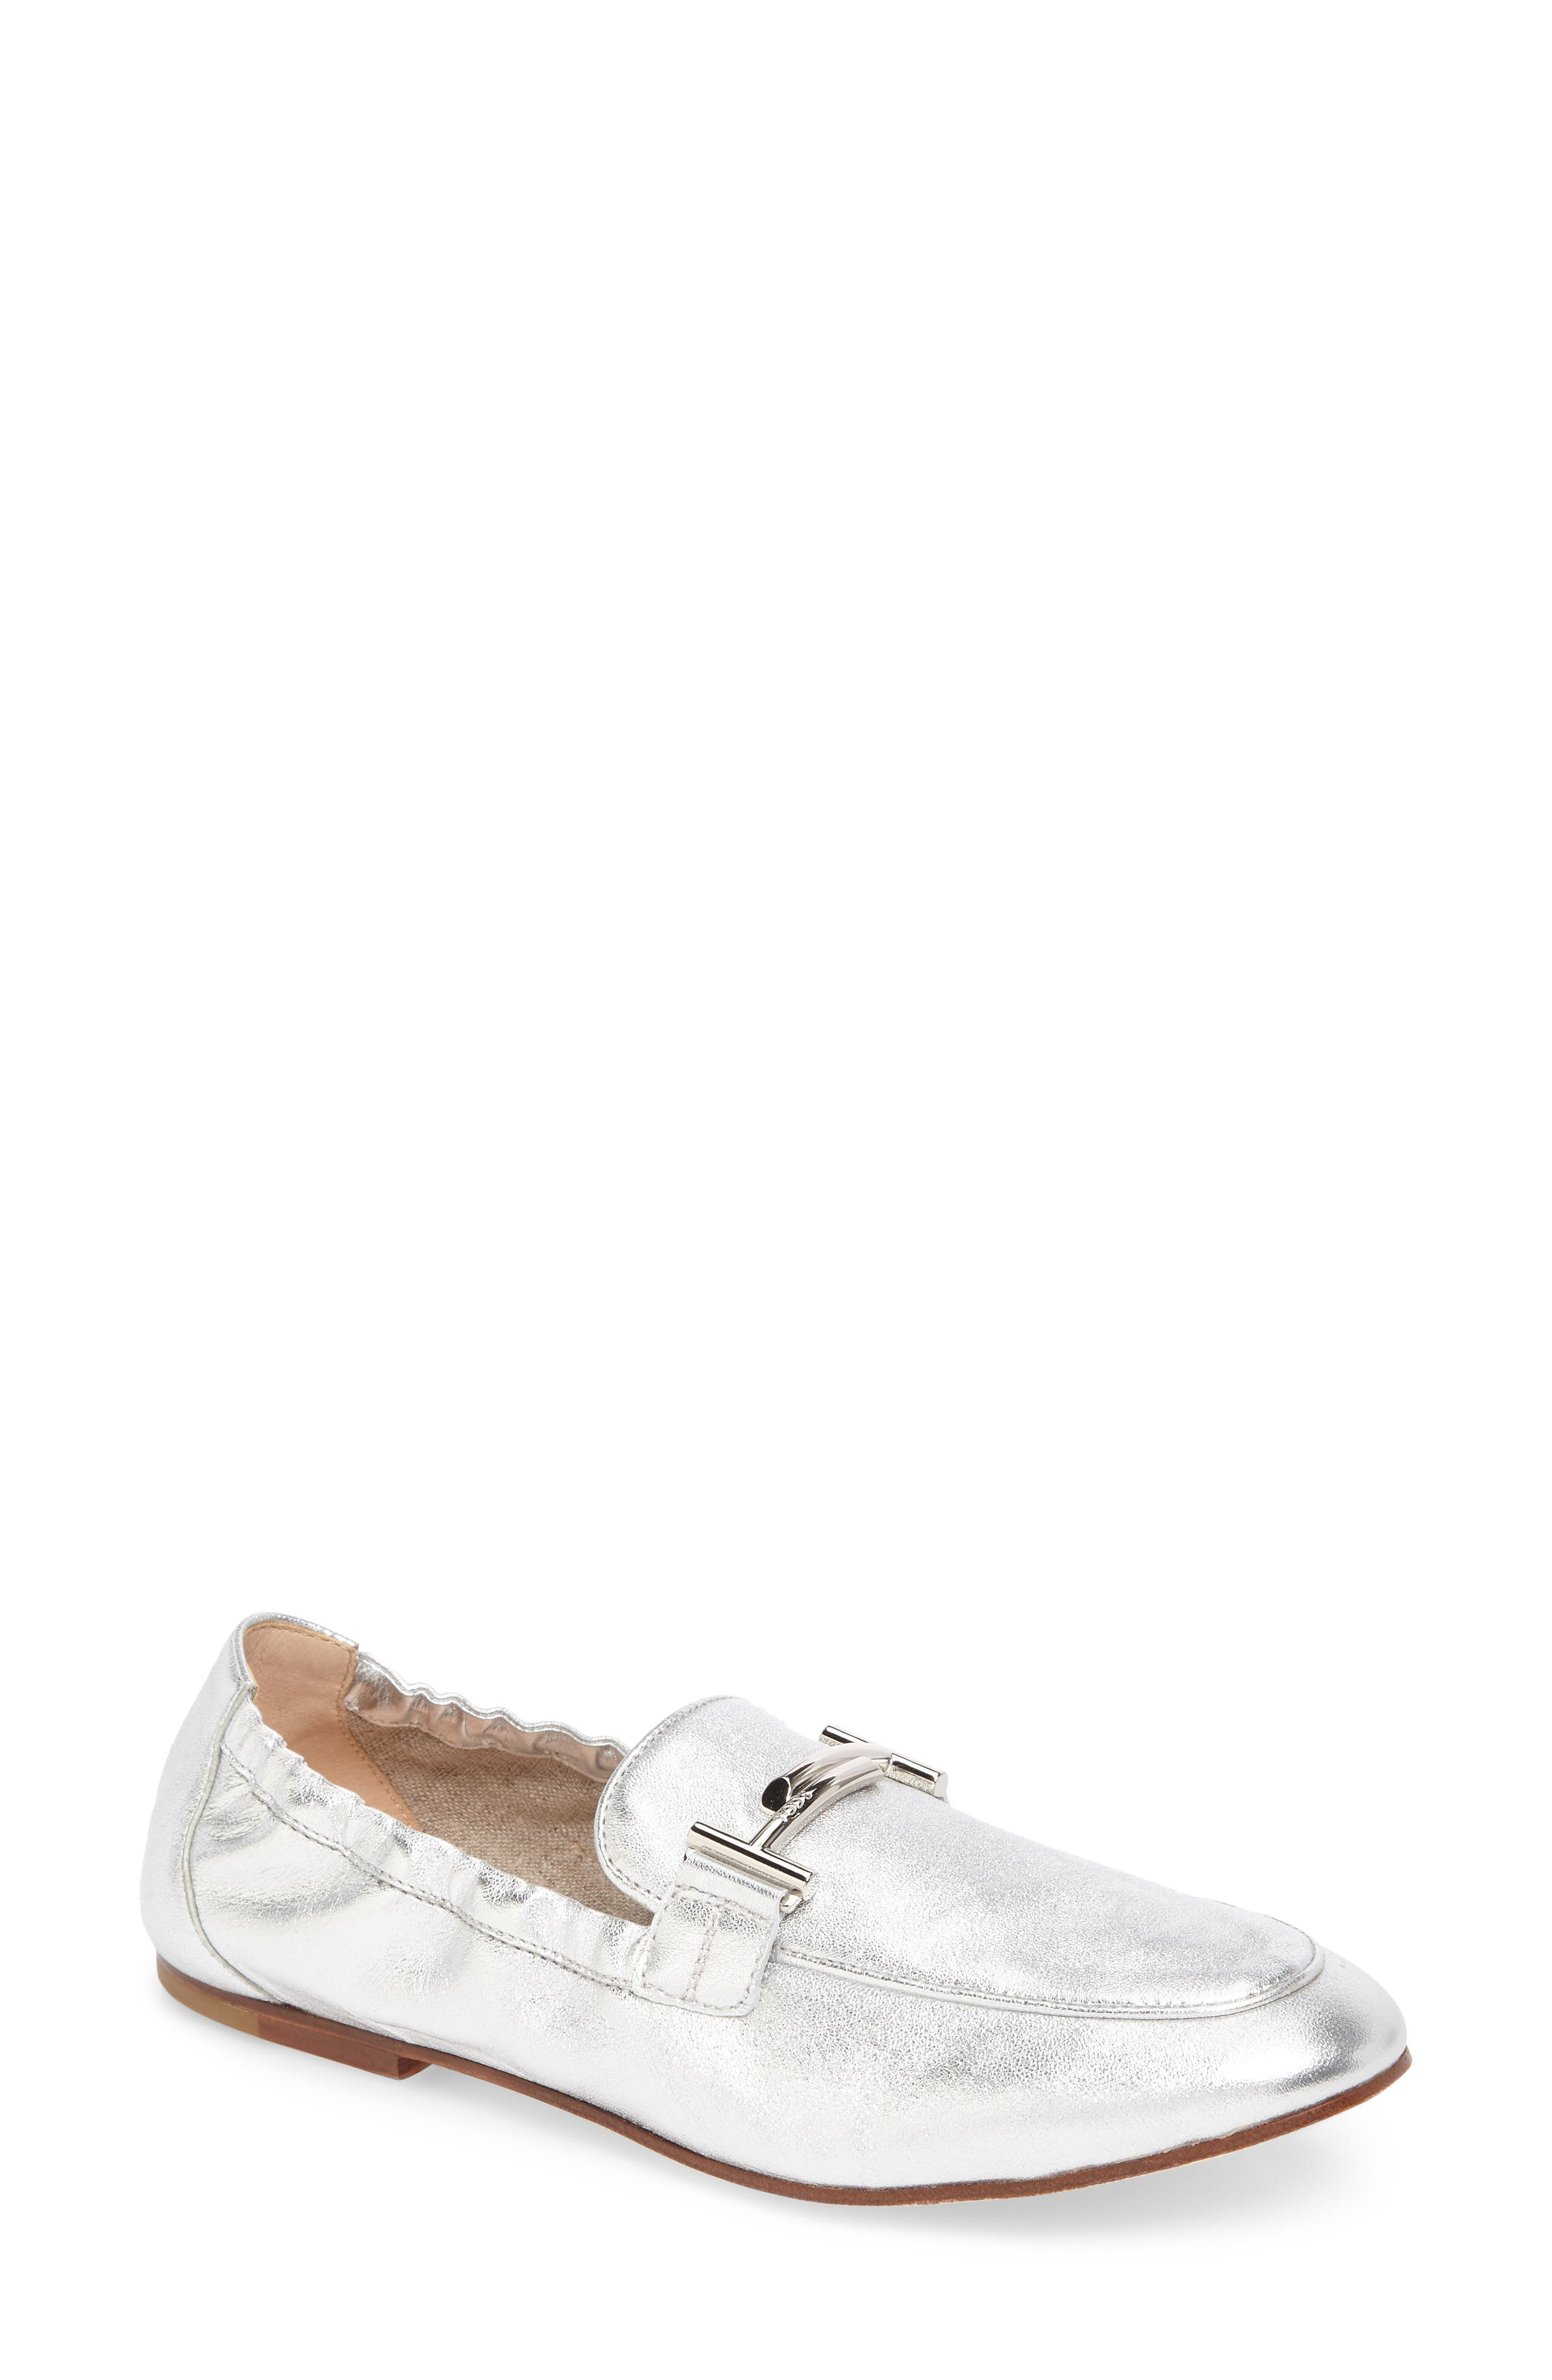 Double T Scrunch Loafer,                             Main thumbnail 1, color,                             Silver